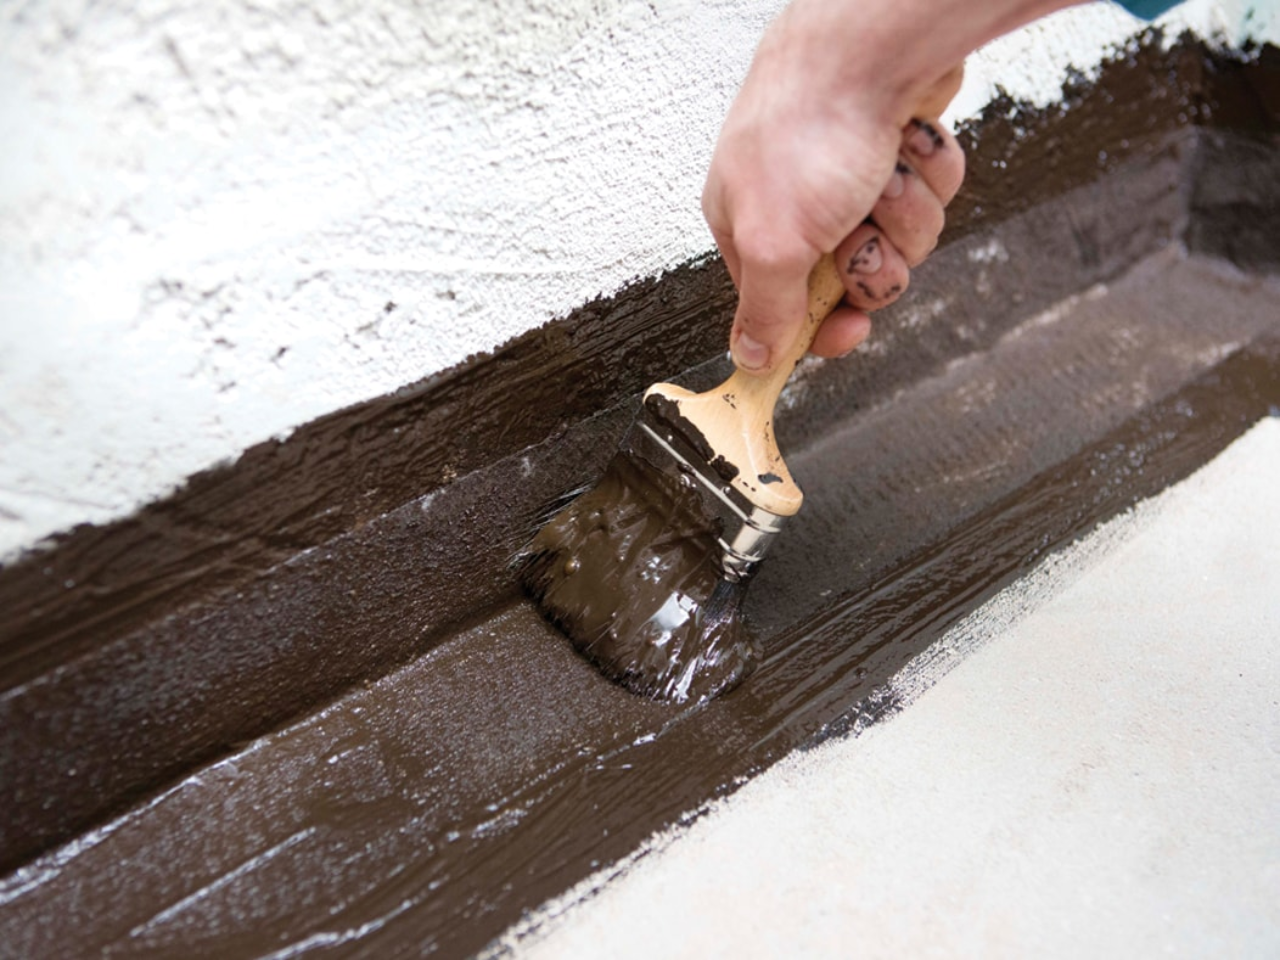 https://www.bison.nl/content/dam/bison/nl/start-met-een-klus/waterproofing/Joints.jpg.thumb.1280.1280.png